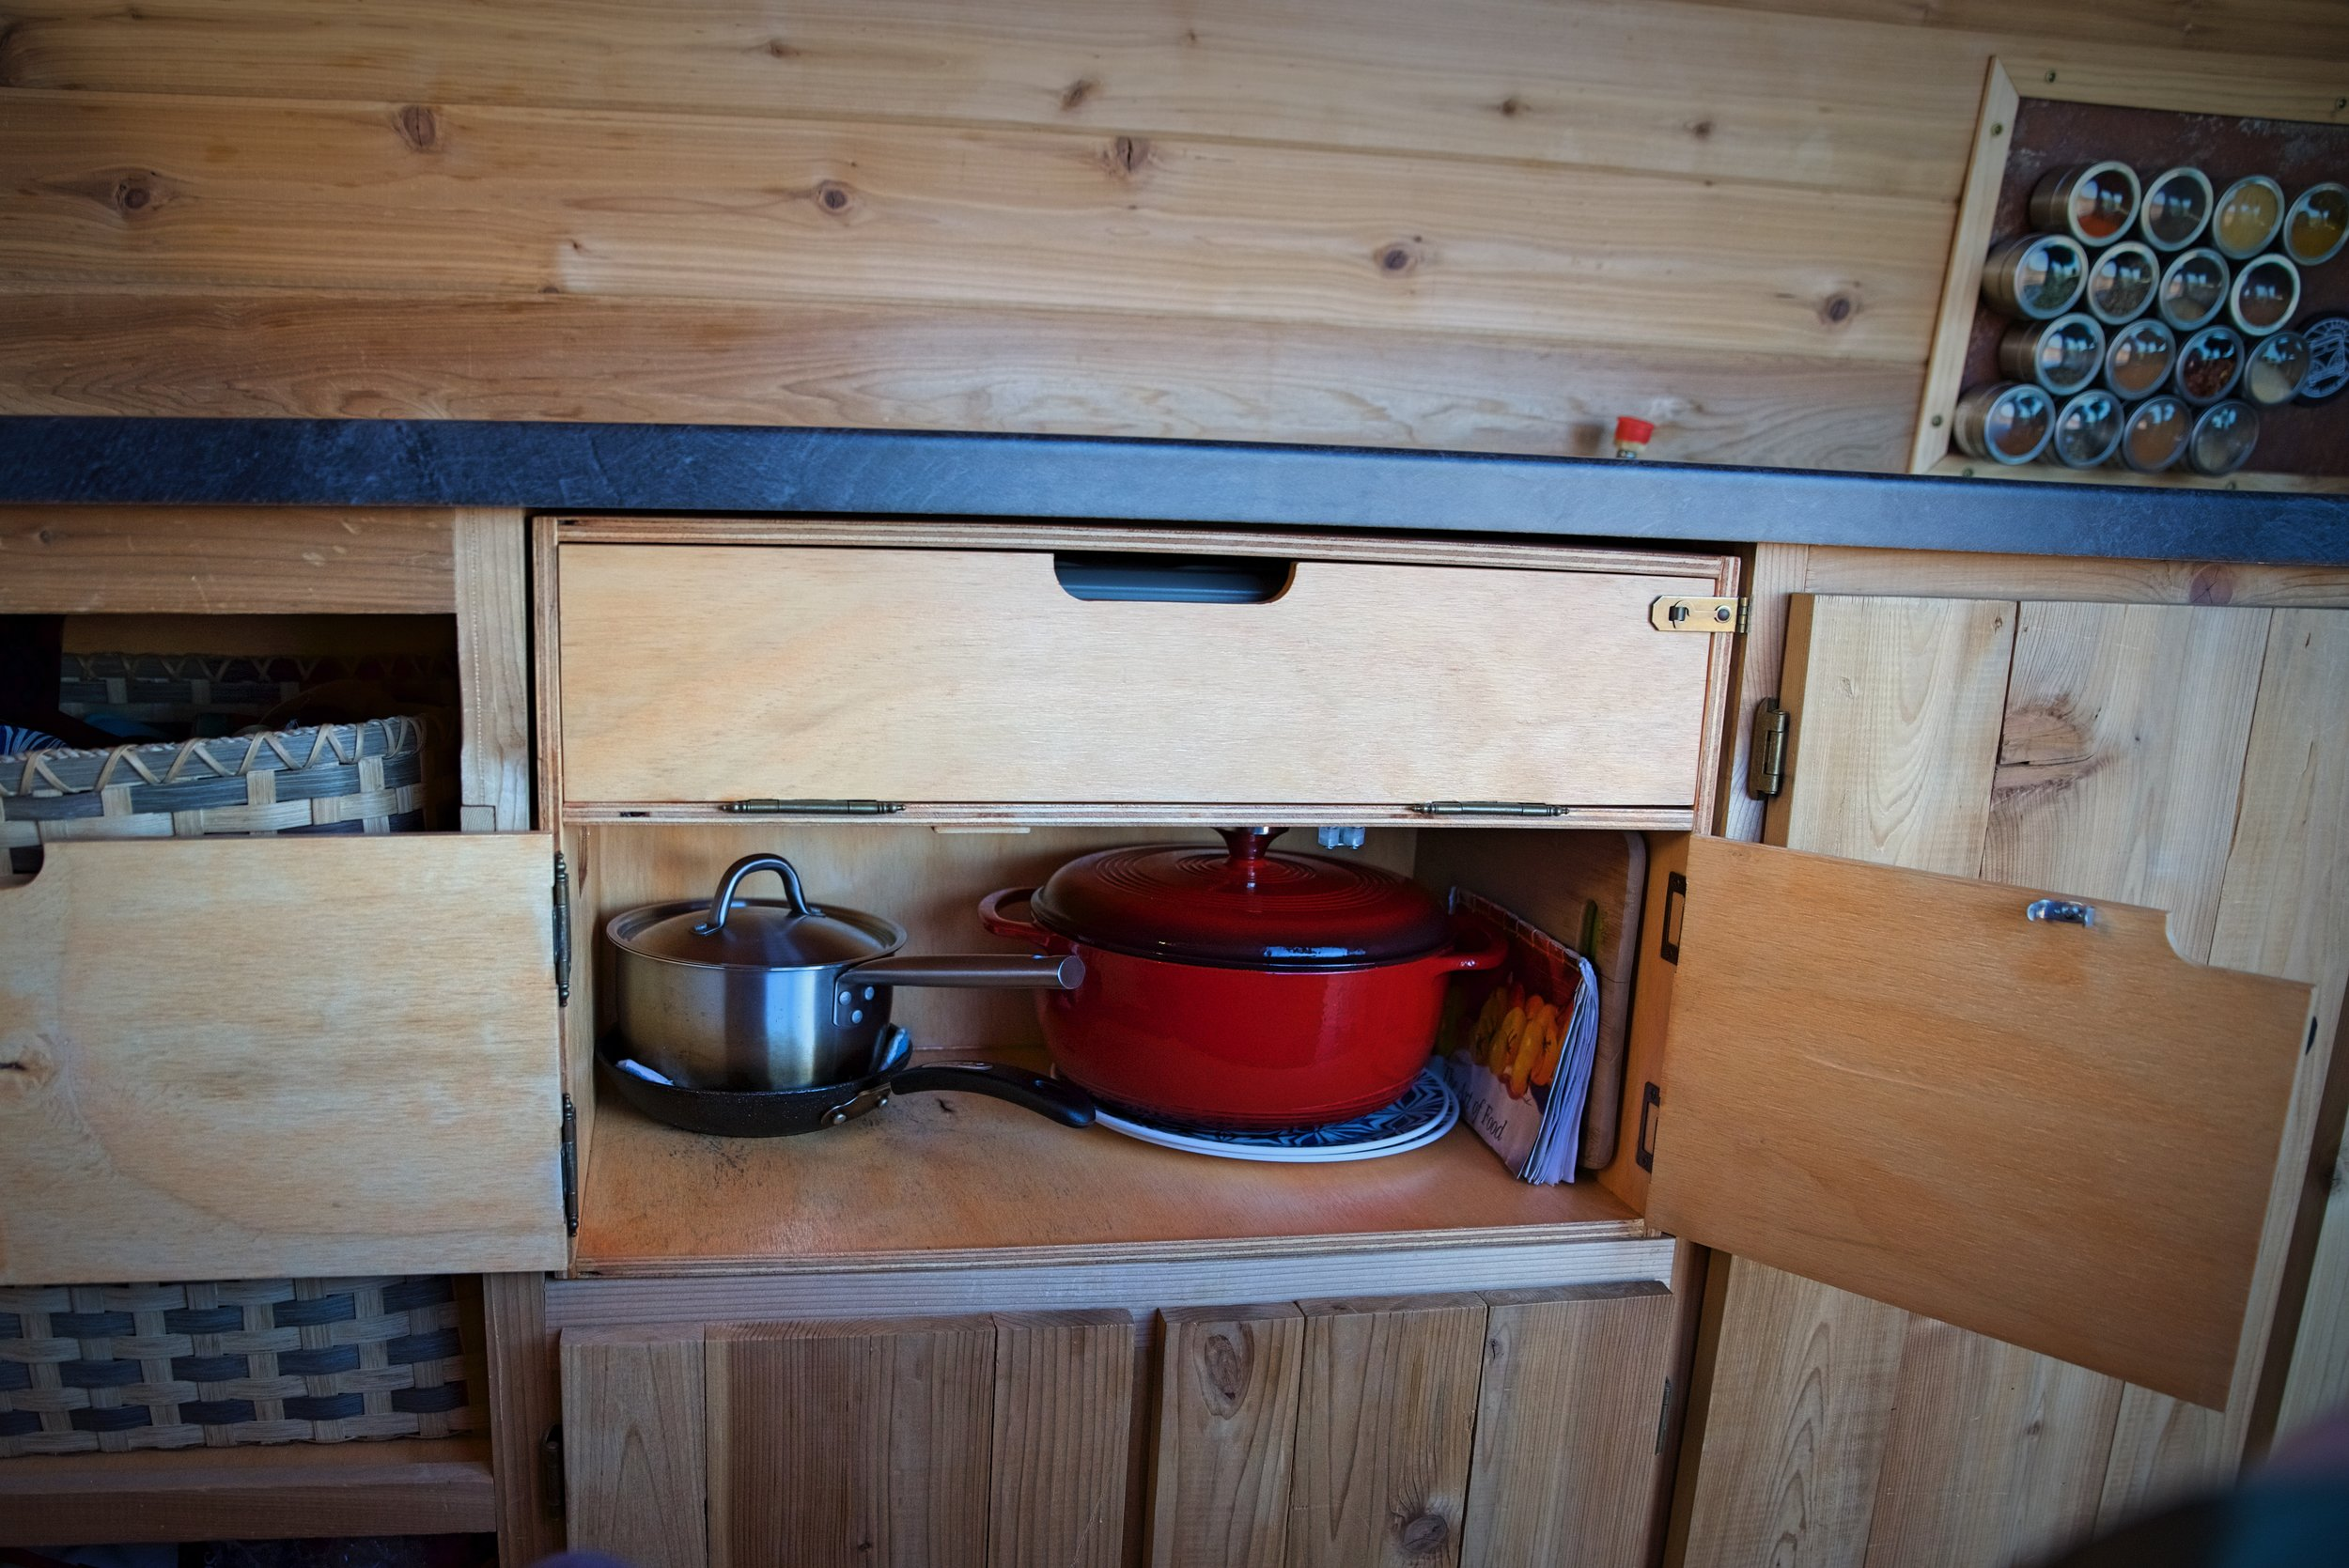 Our cabinetry includes a chuck box that we can remove in order to cook outside the van. It holds our dishes and our stove.